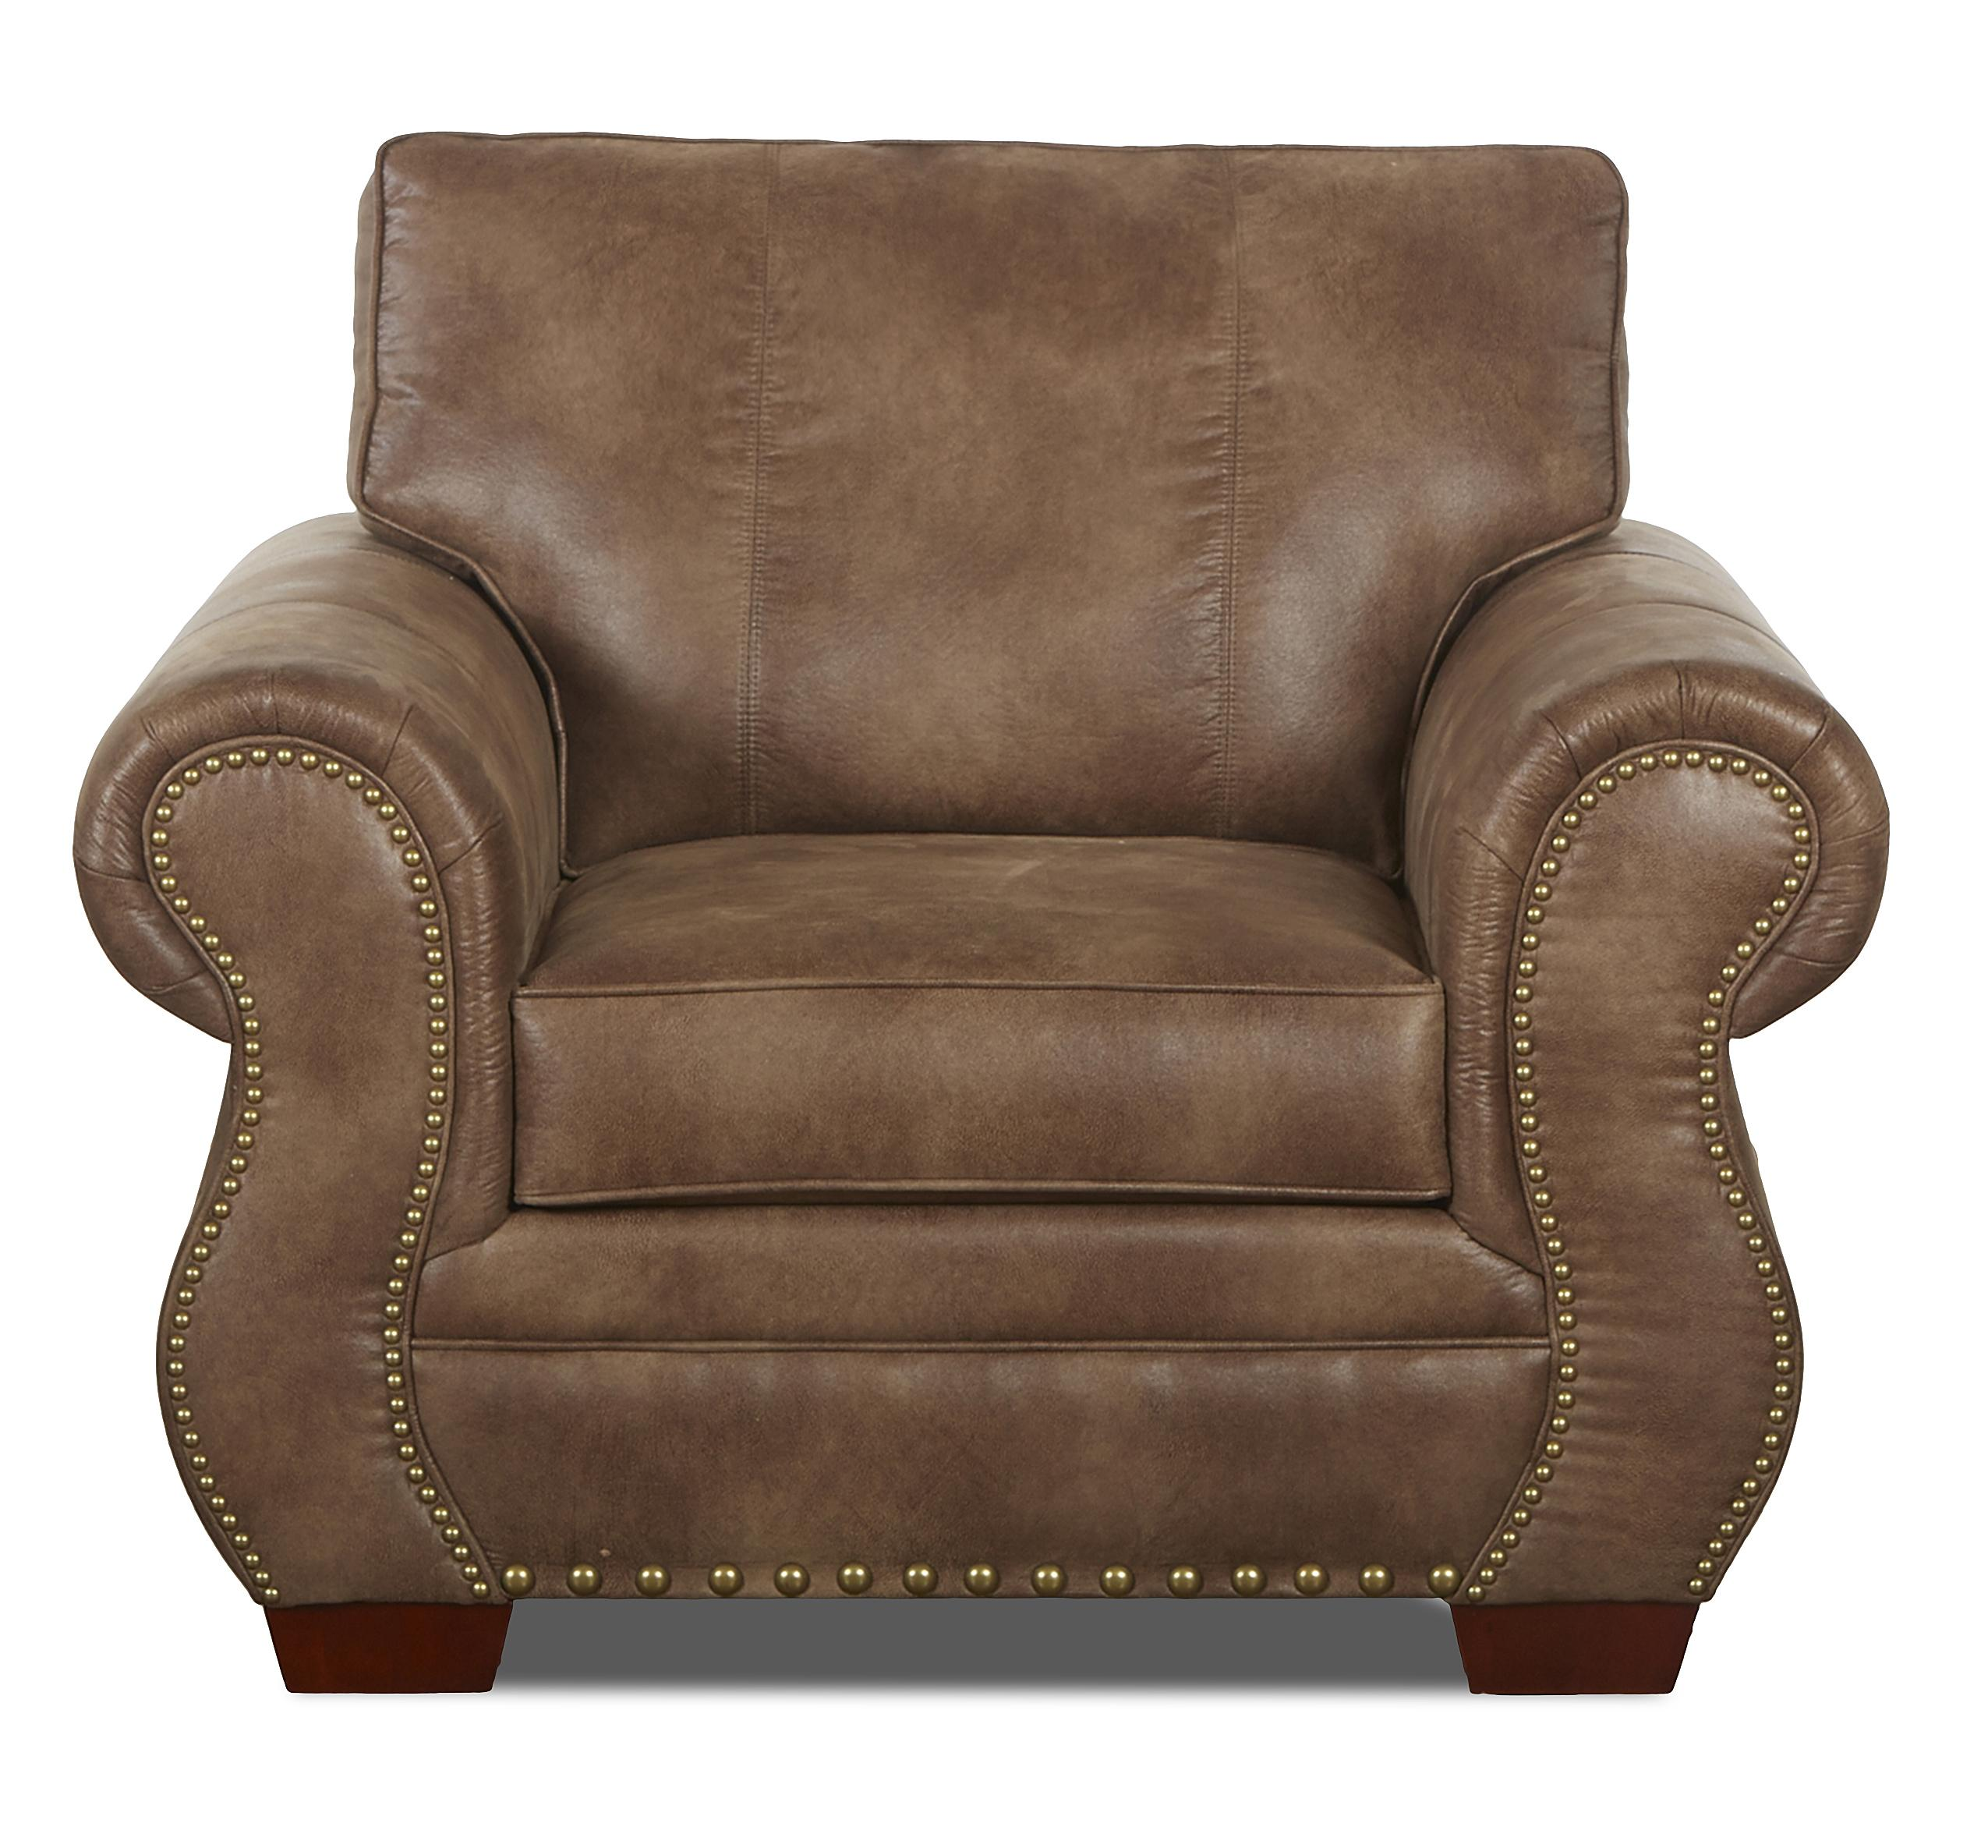 Klaussner Blackburn Traditional Chair - Item Number: K14310 C-PadreTaupe